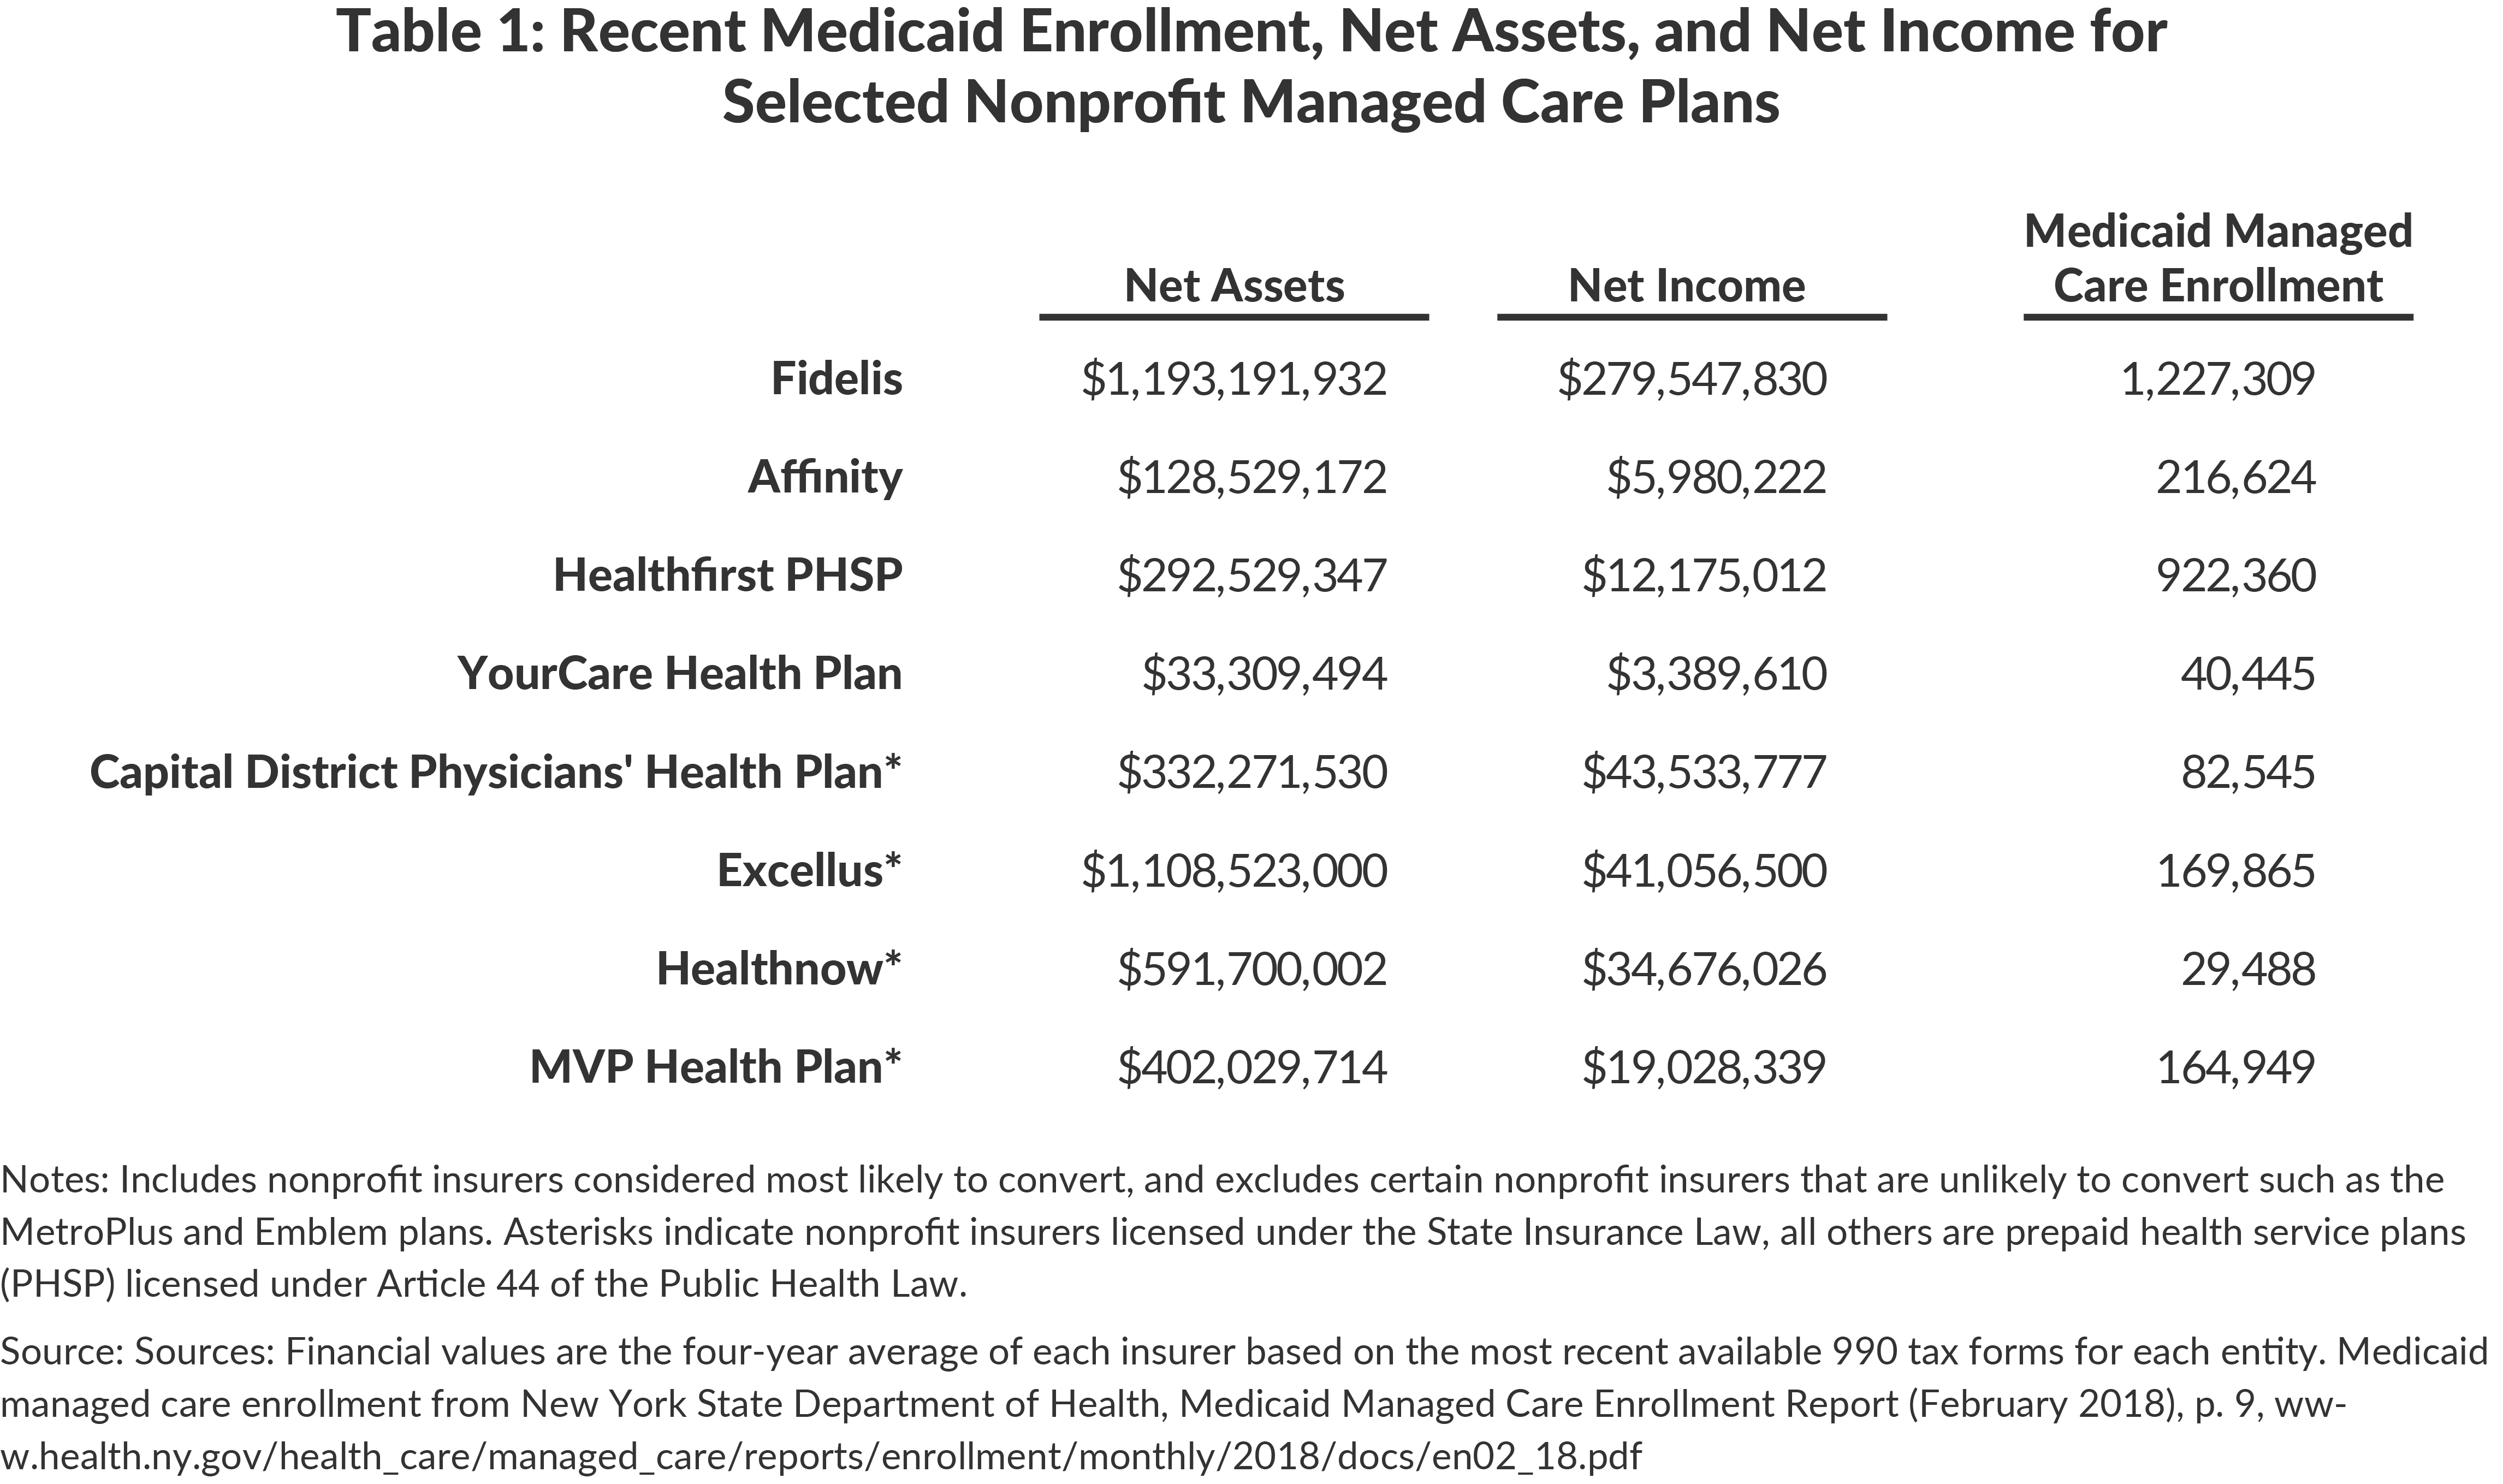 table 1 : Net Assets, and Net Income for Selected Nonprofit Managed Care Plans